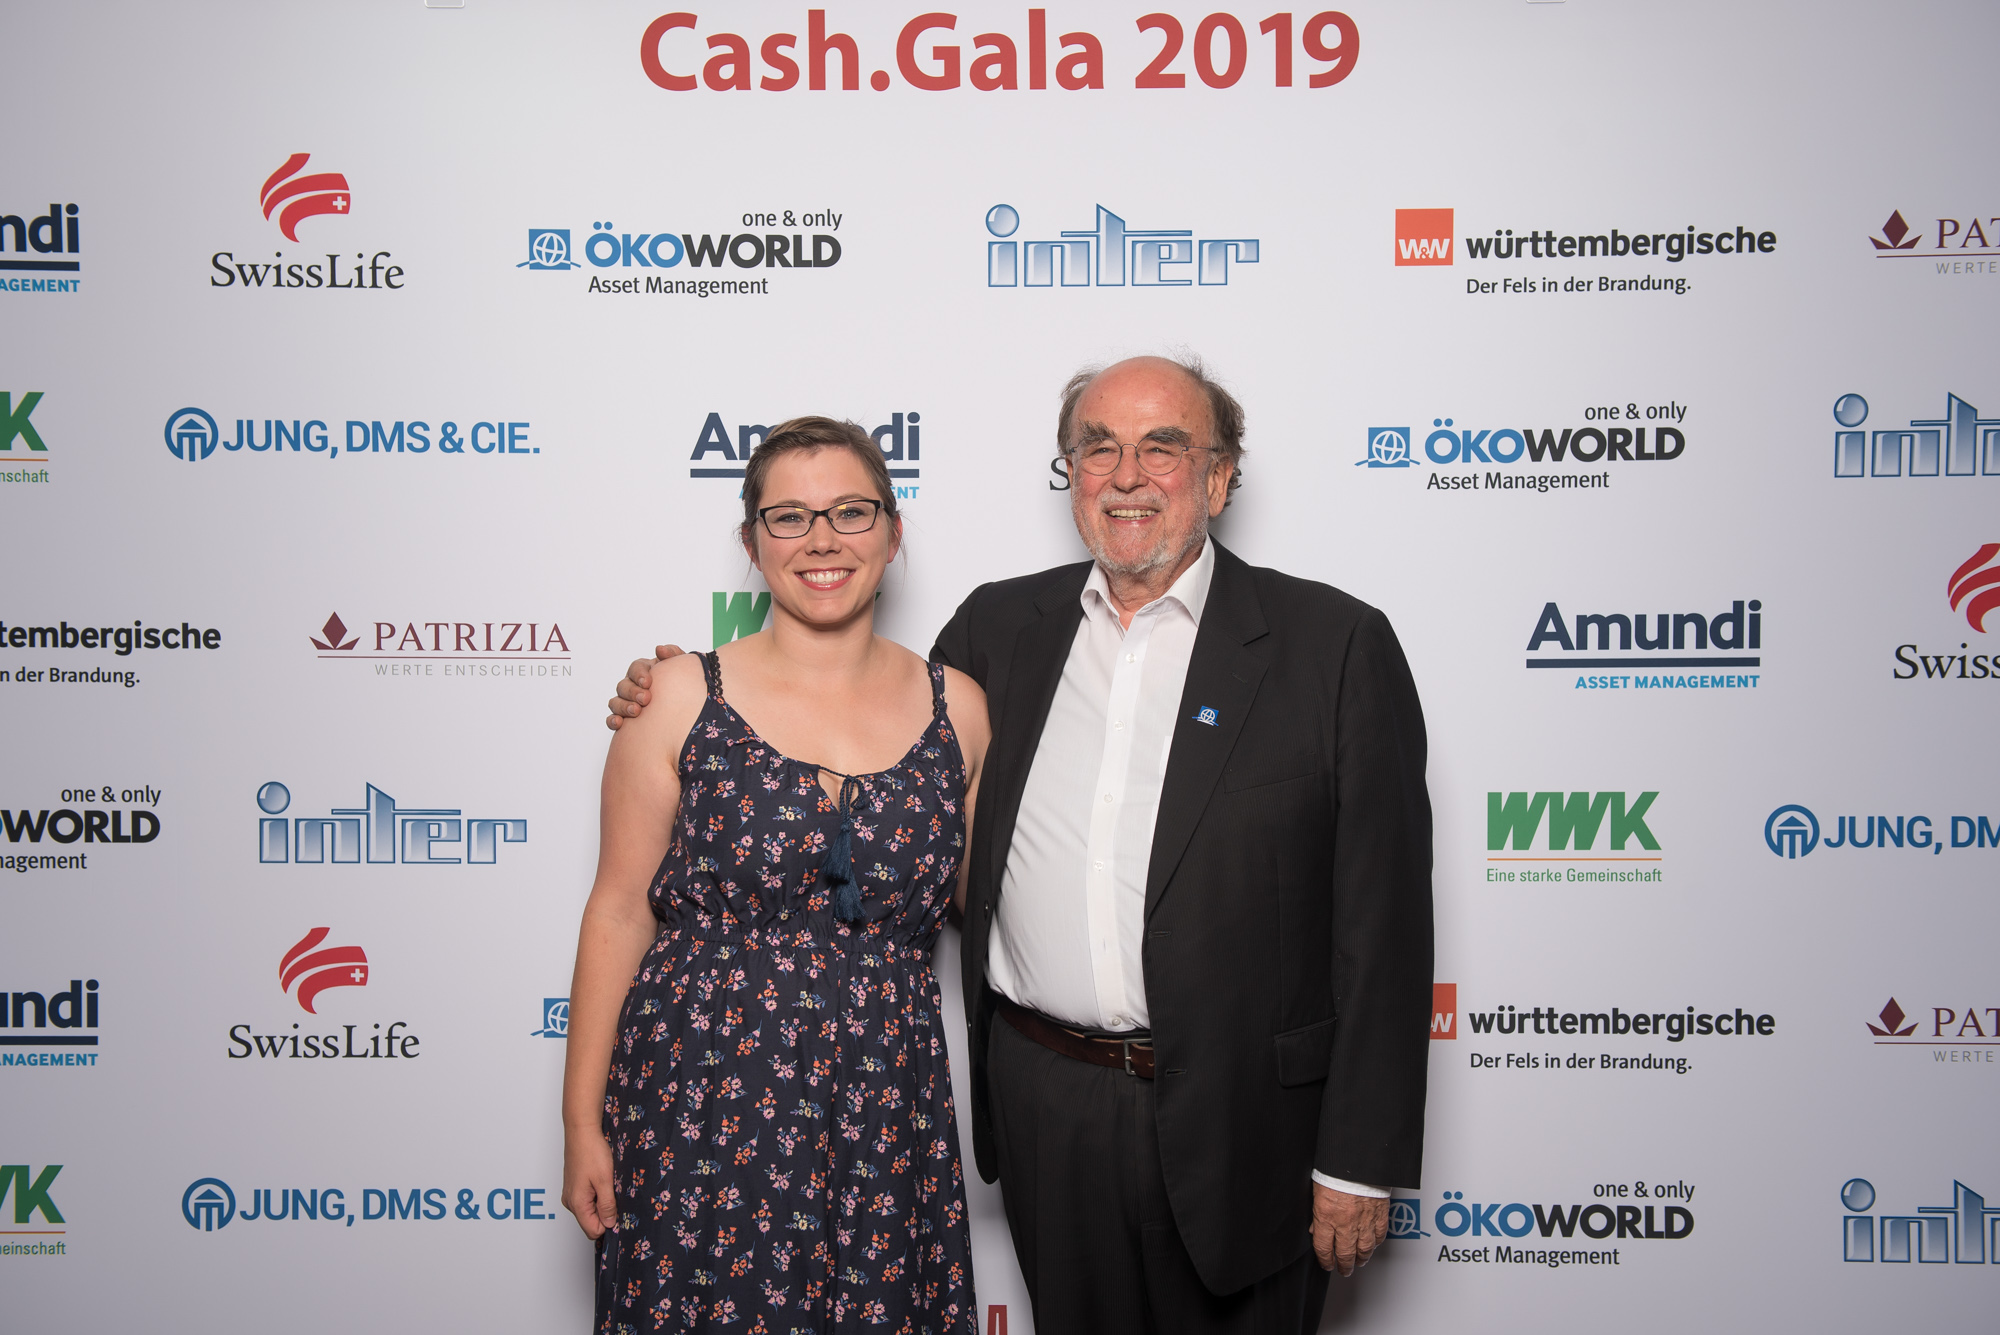 CashGala 2019 0070 AM DSC7151 in Cash.Gala 2019